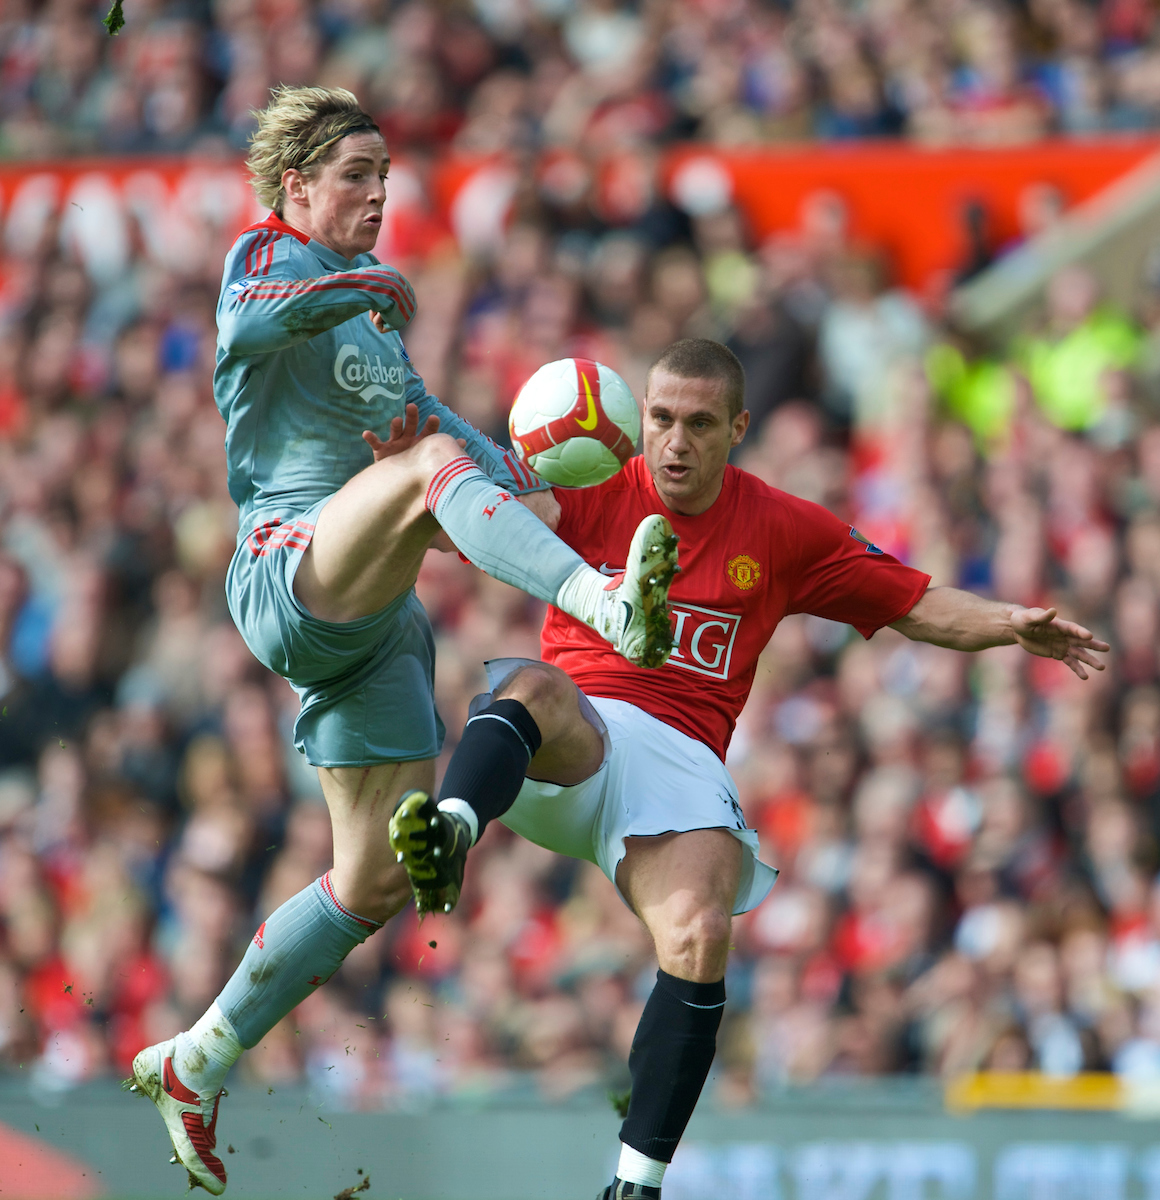 MANCHESTER, ENGLAND - Saturday, March 14, 2009: Liverpool's Fernando Torres powers past Manchester United's hapless Nemanja Vidic on his way to scoring the second goal during the Premiership match at Old Trafford. (Photo by David Rawcliffe/Propaganda)